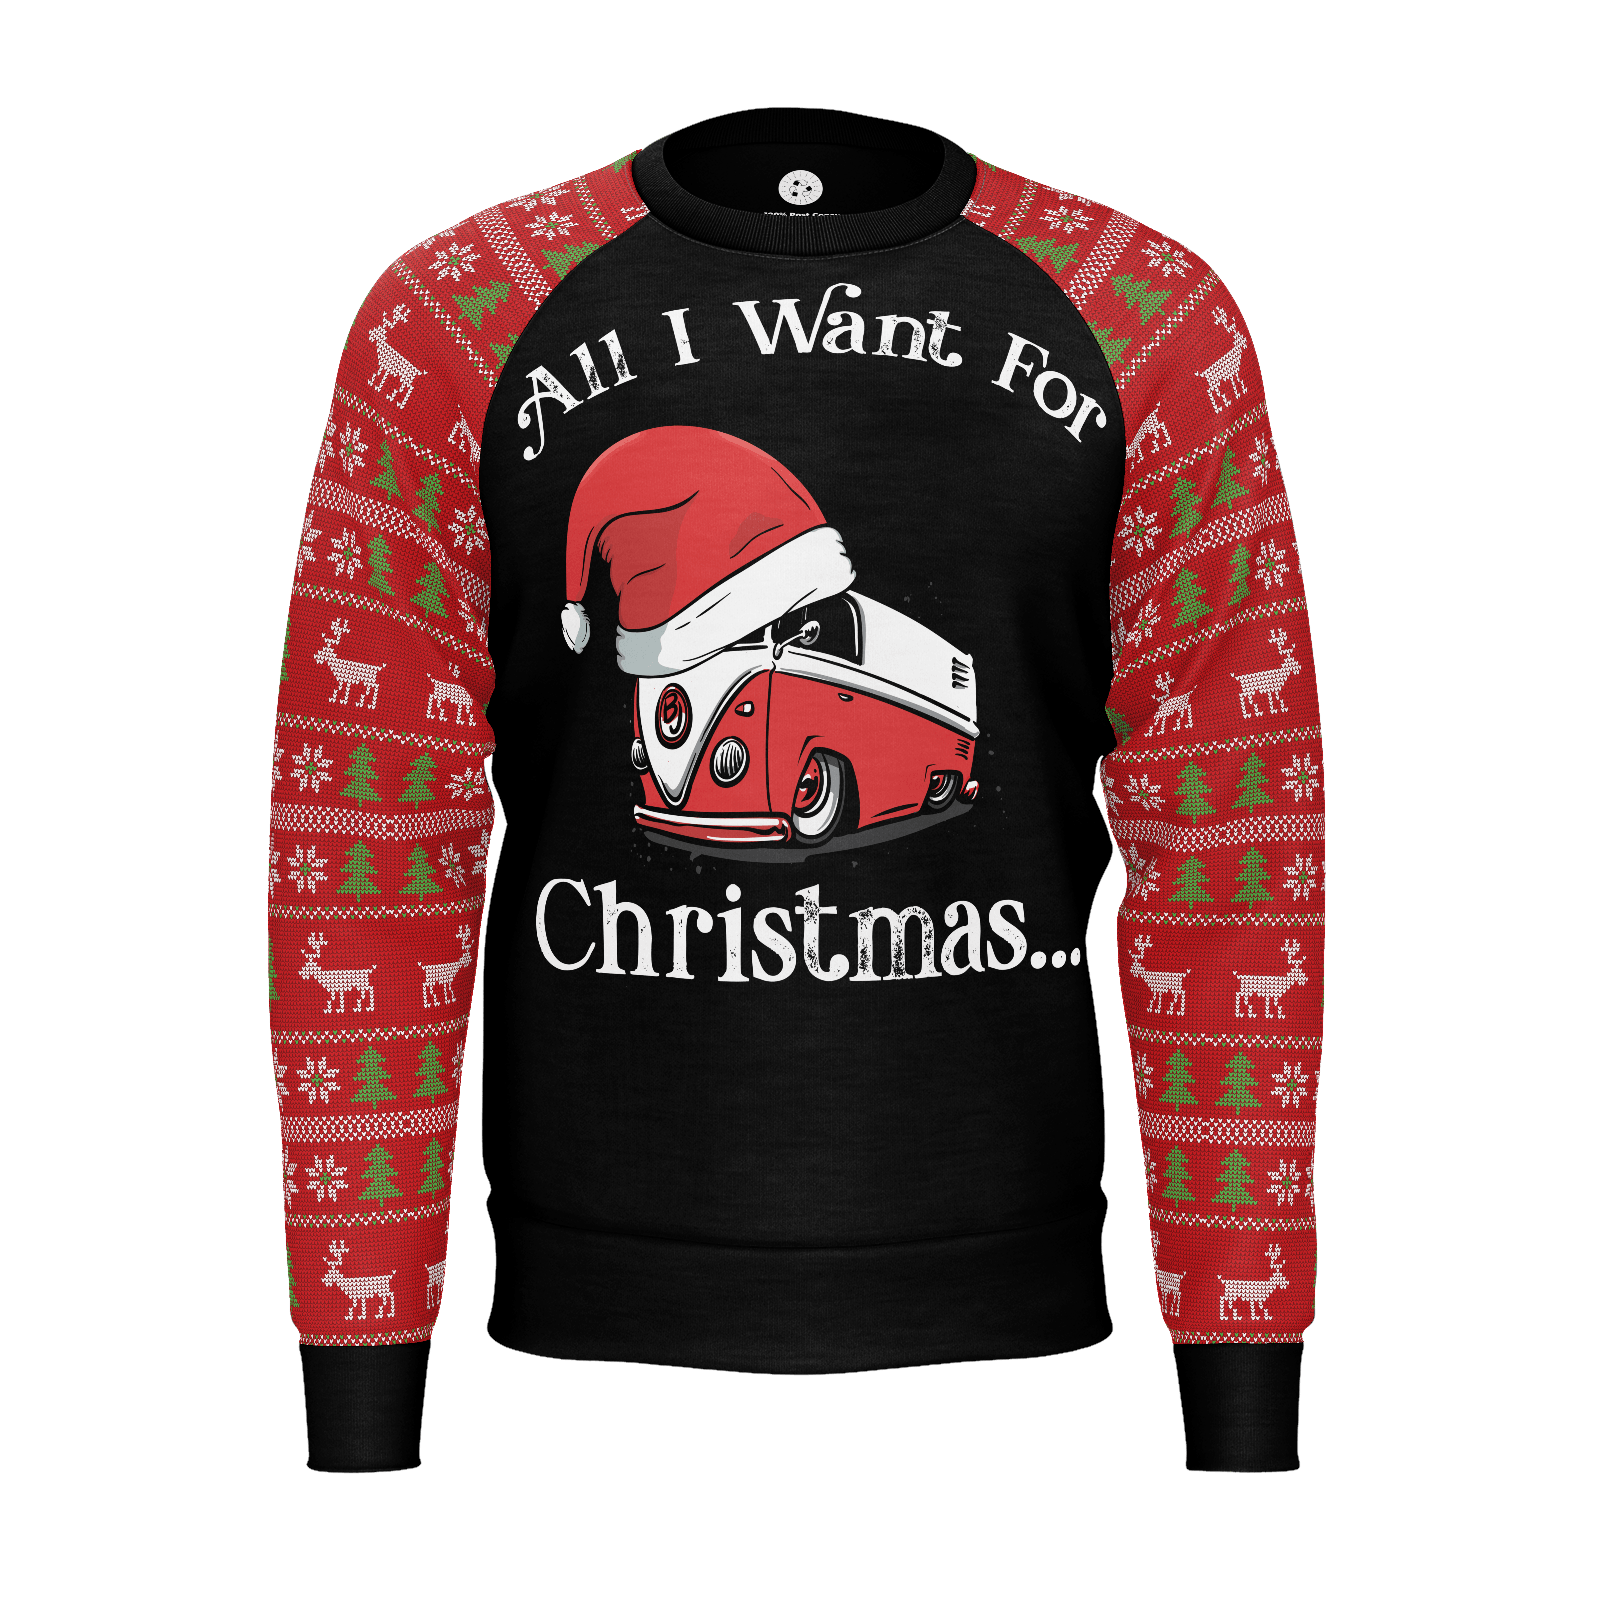 All I Want For Christmas Womens RPET Sweater V2